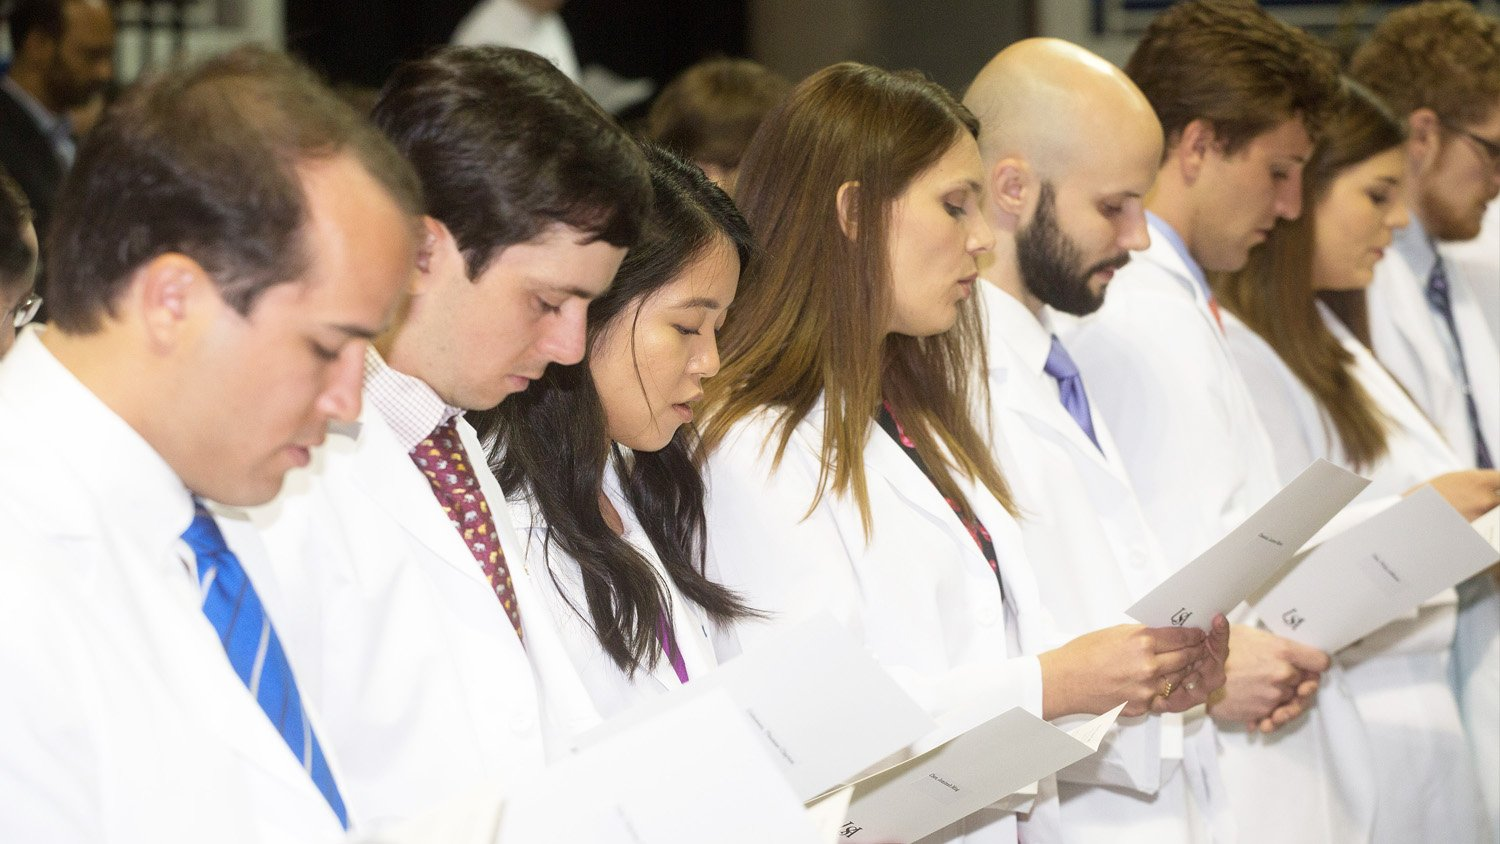 White coat ceremony